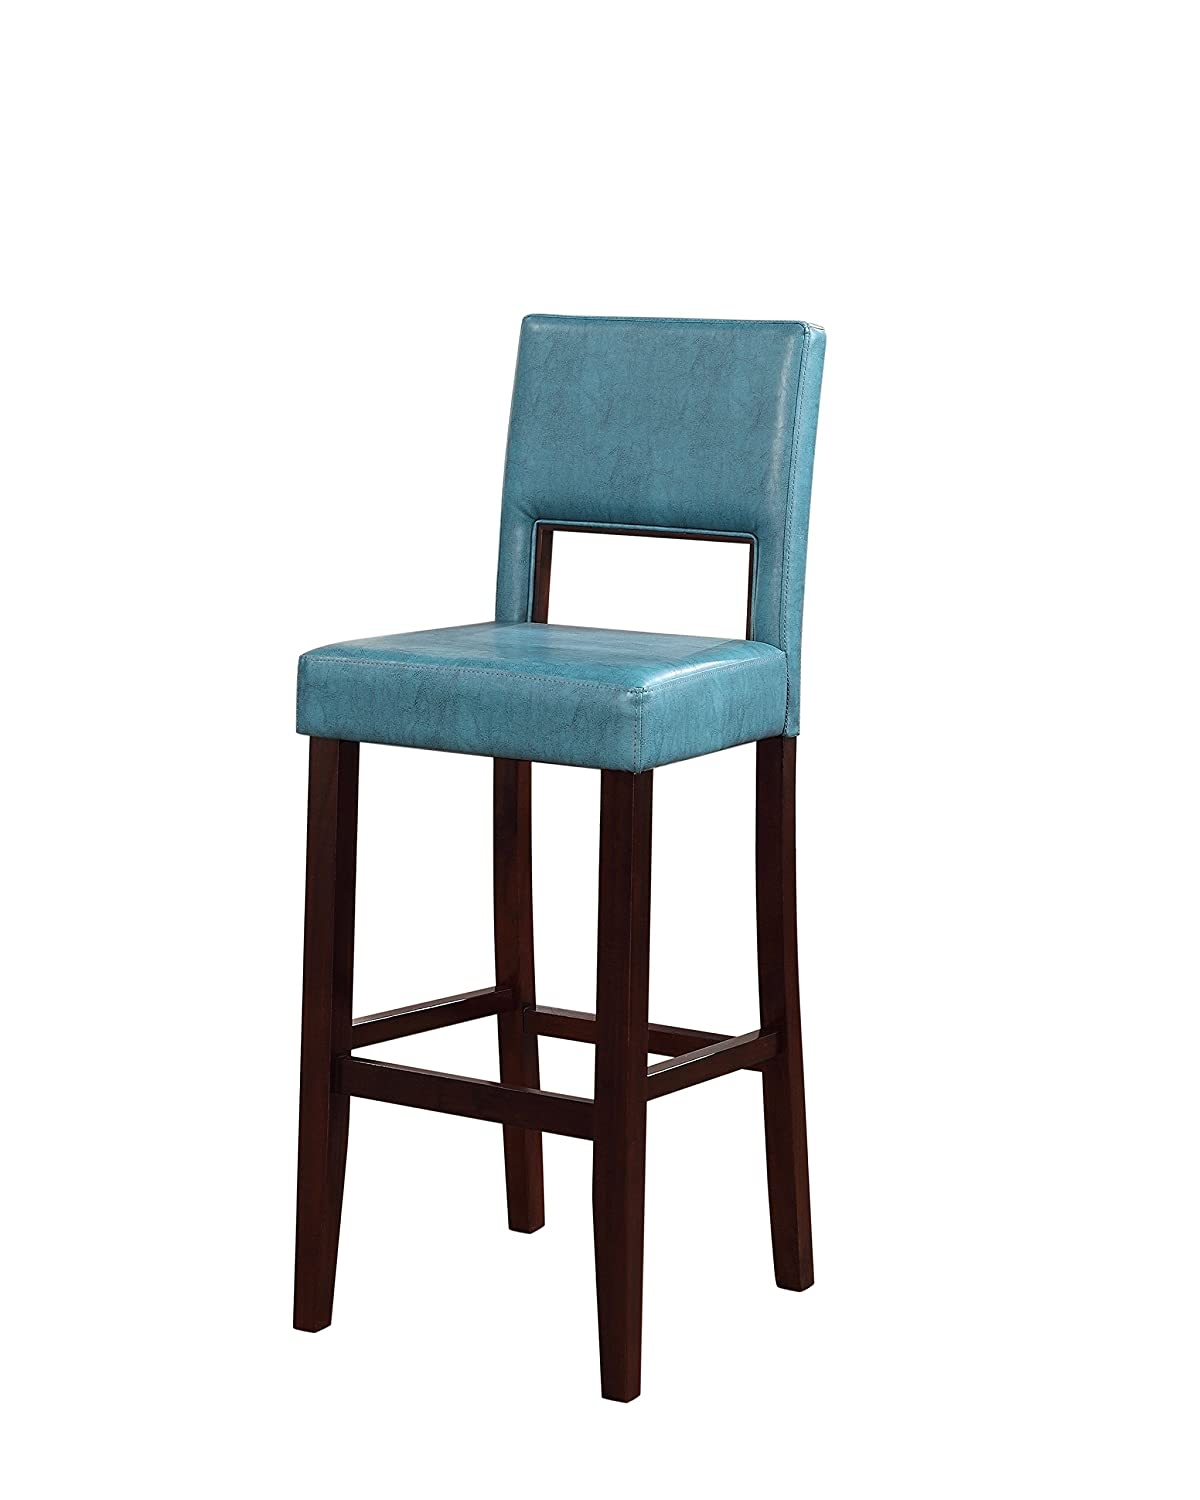 Amazon.com: Linon Vega Bar Stool, Aegean Blue: Kitchen & Dining